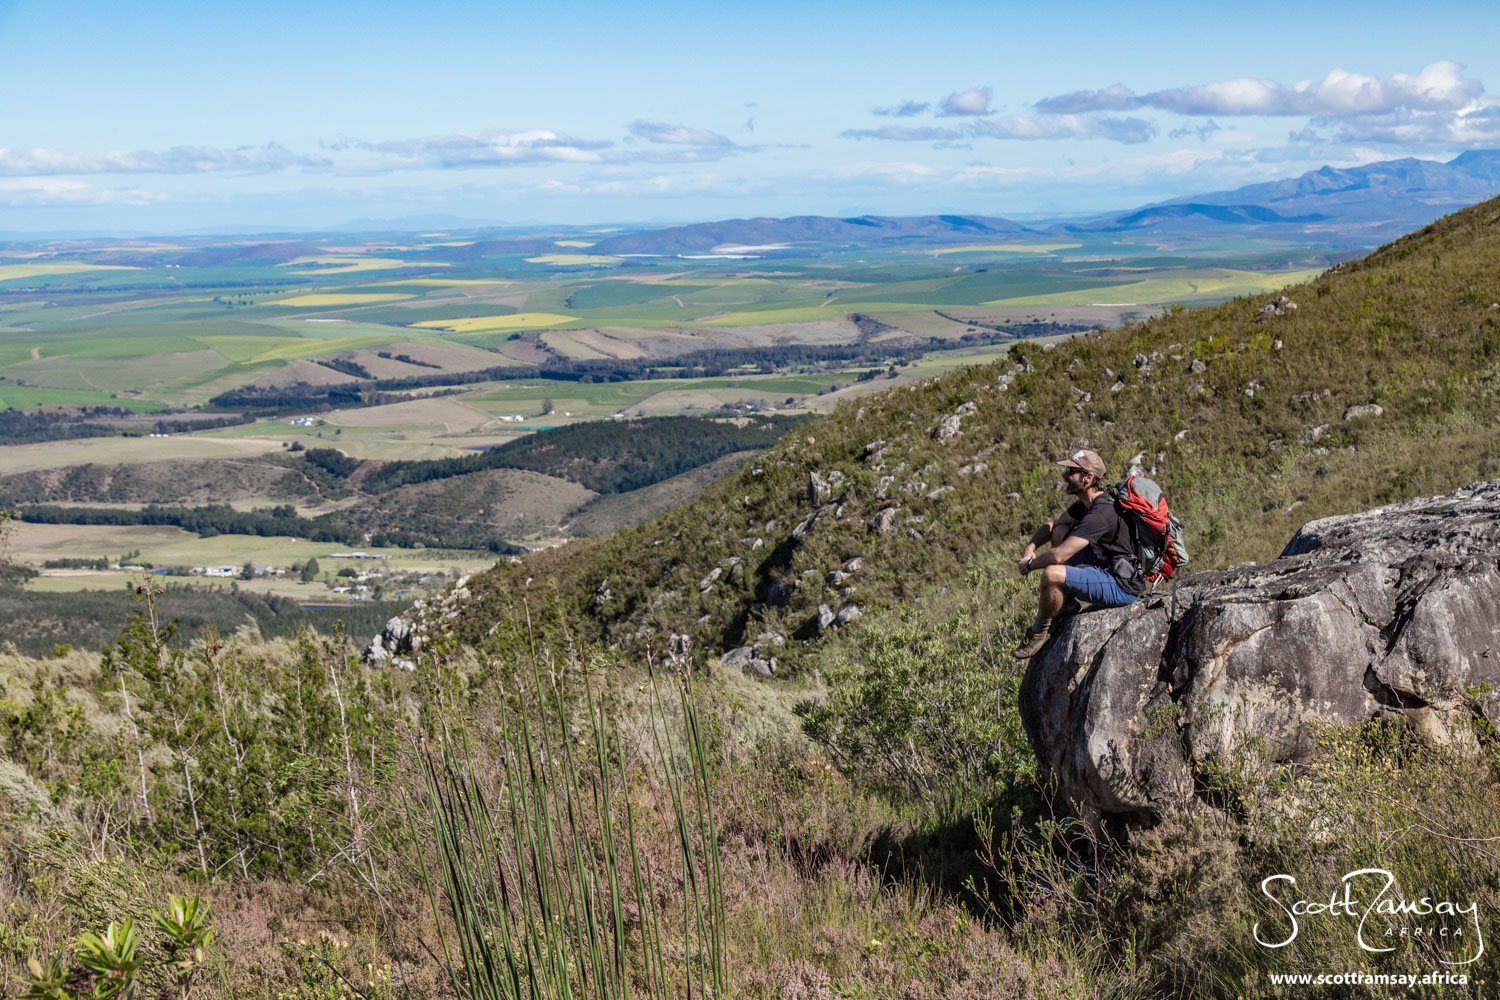 Tim looking out south over the Overberg, the farming region that lies around Swellendam, south of Marloth.